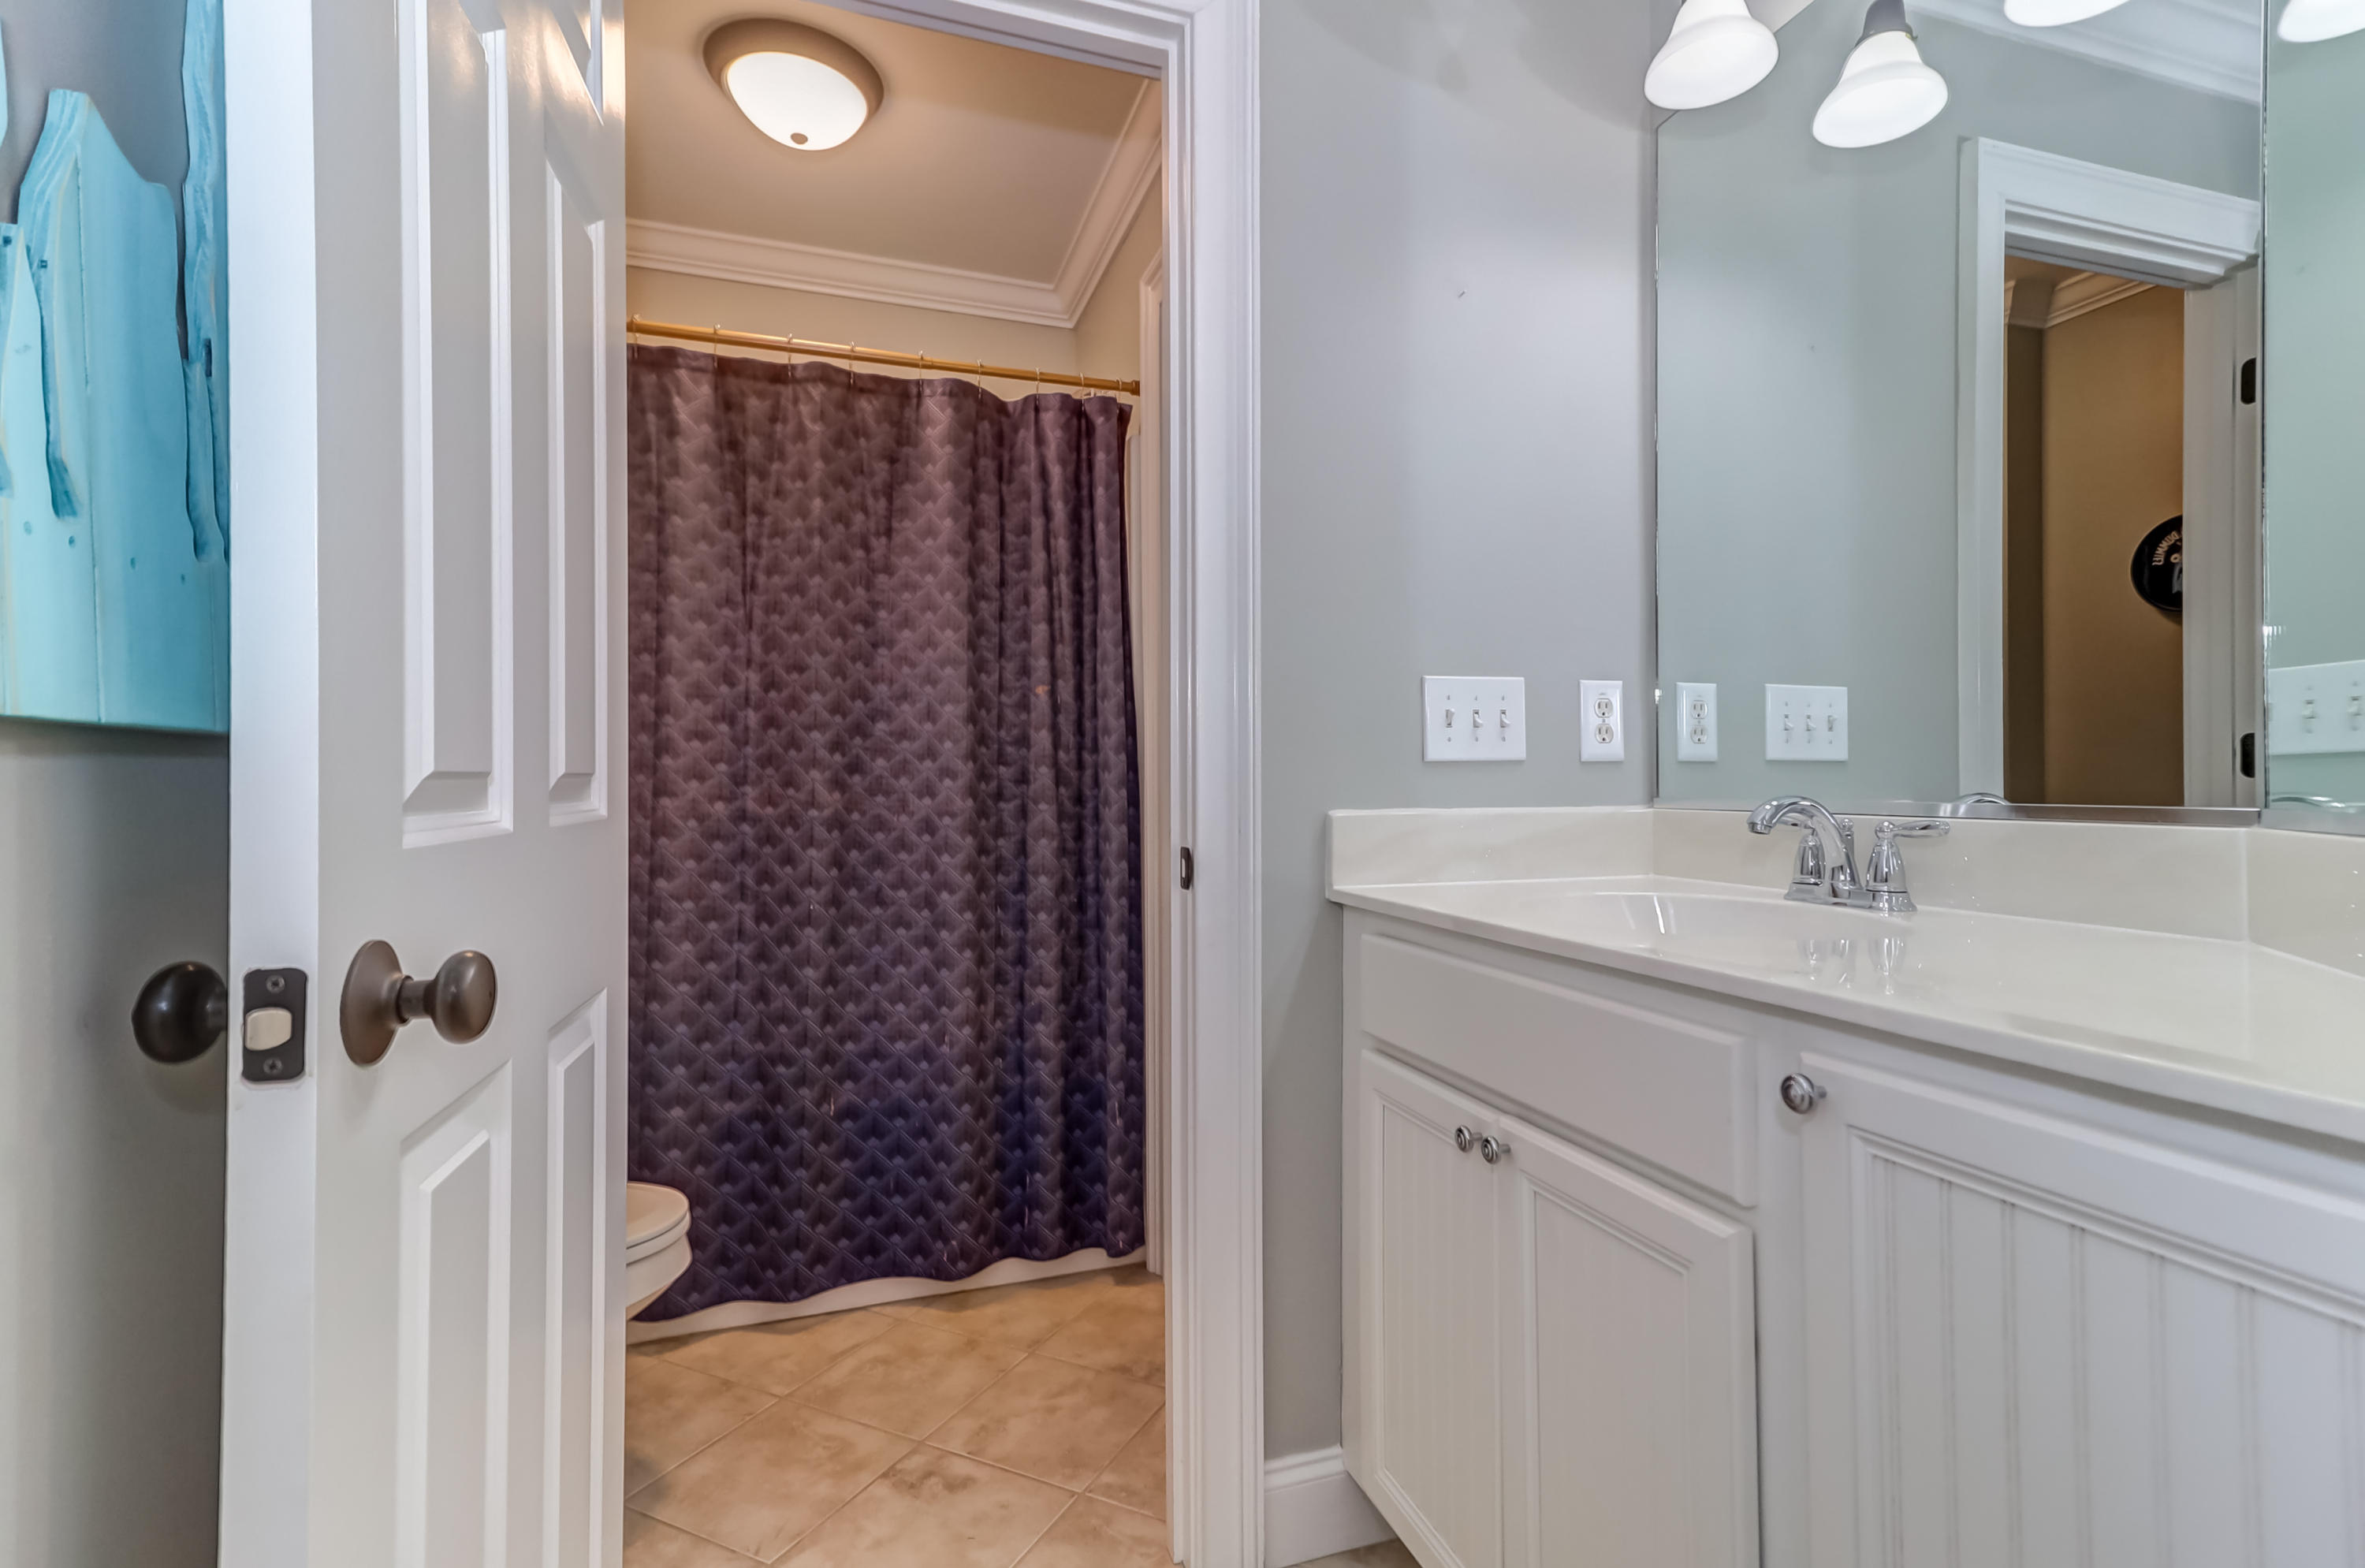 Woodward Pointe Homes For Sale - 657 White Chapel, Charleston, SC - 1